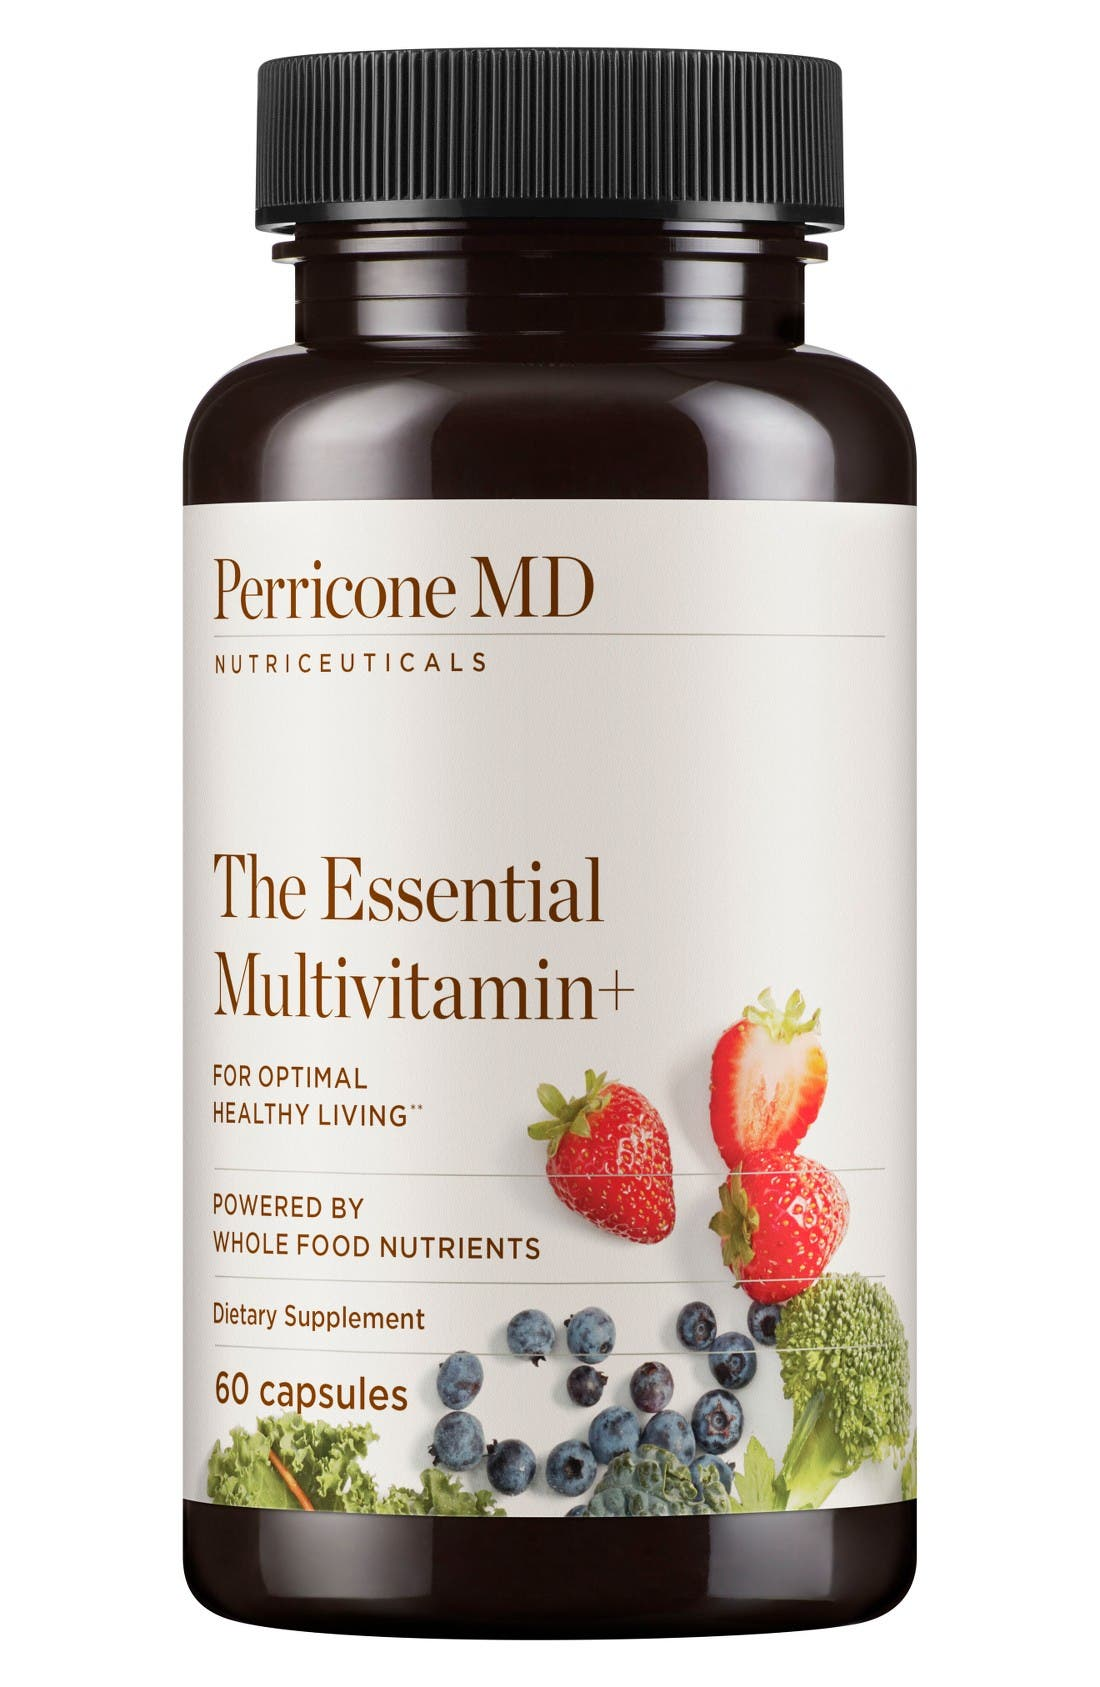 Perricone MD The Essential Multivitamin Supplement